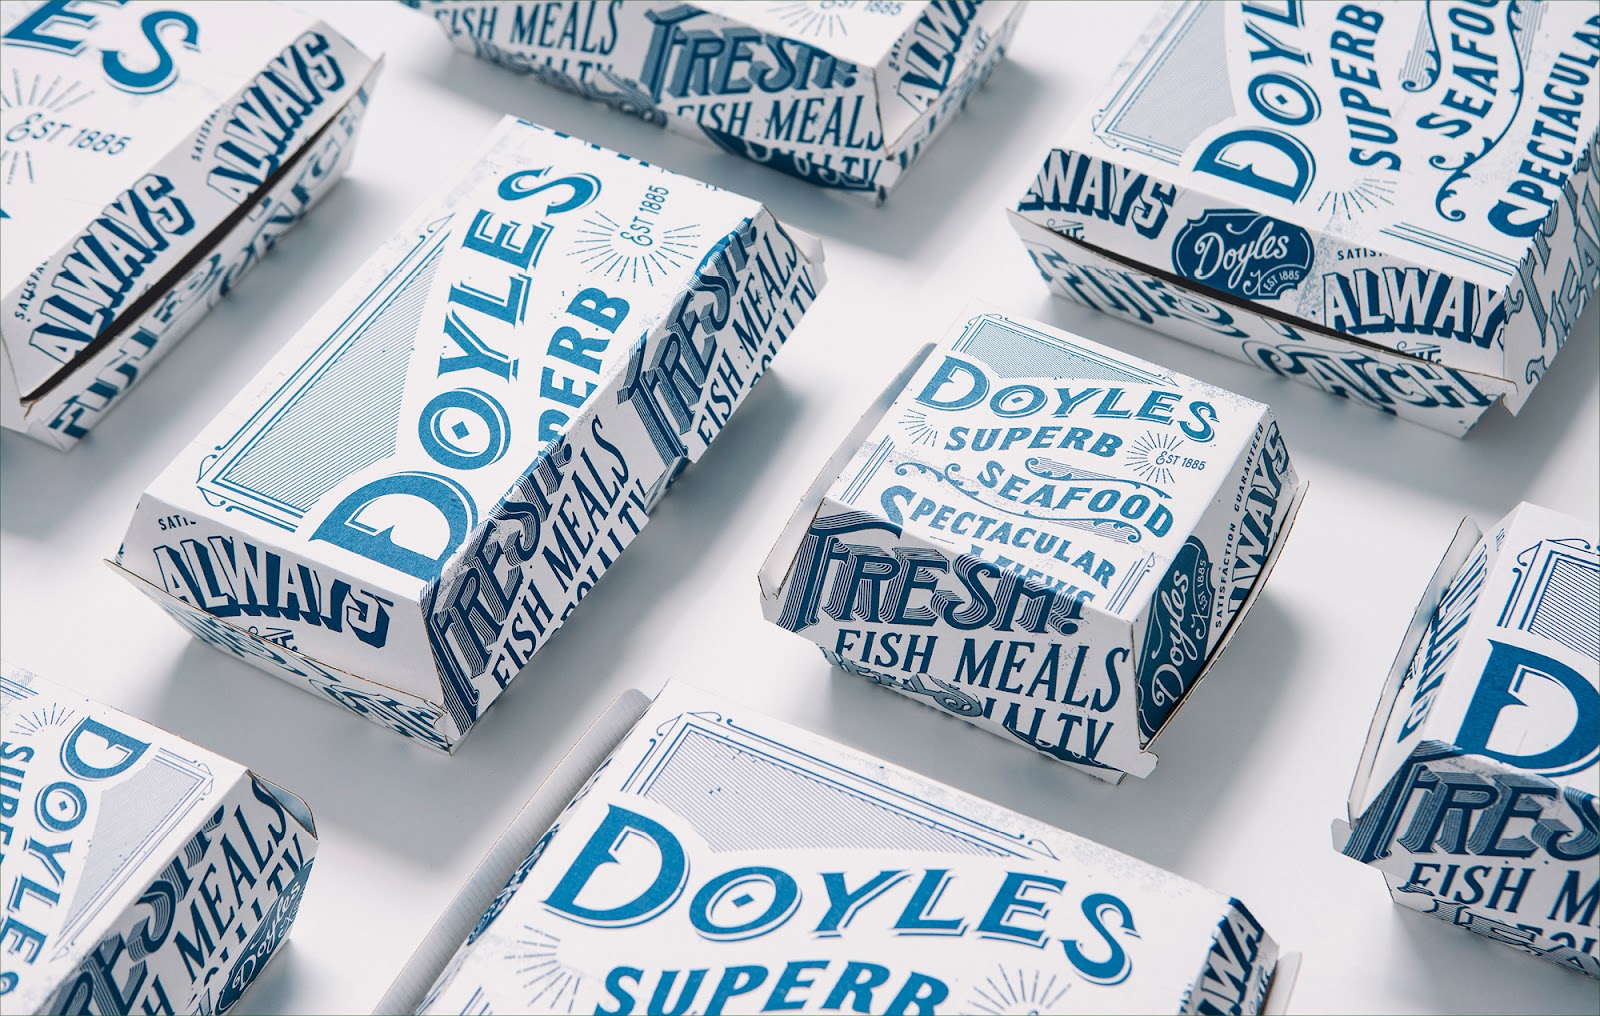 Doyles on the Beach wanted to update their brand design and food packaging to appeal to a younger audience, whilst retaining the heritage of the brand